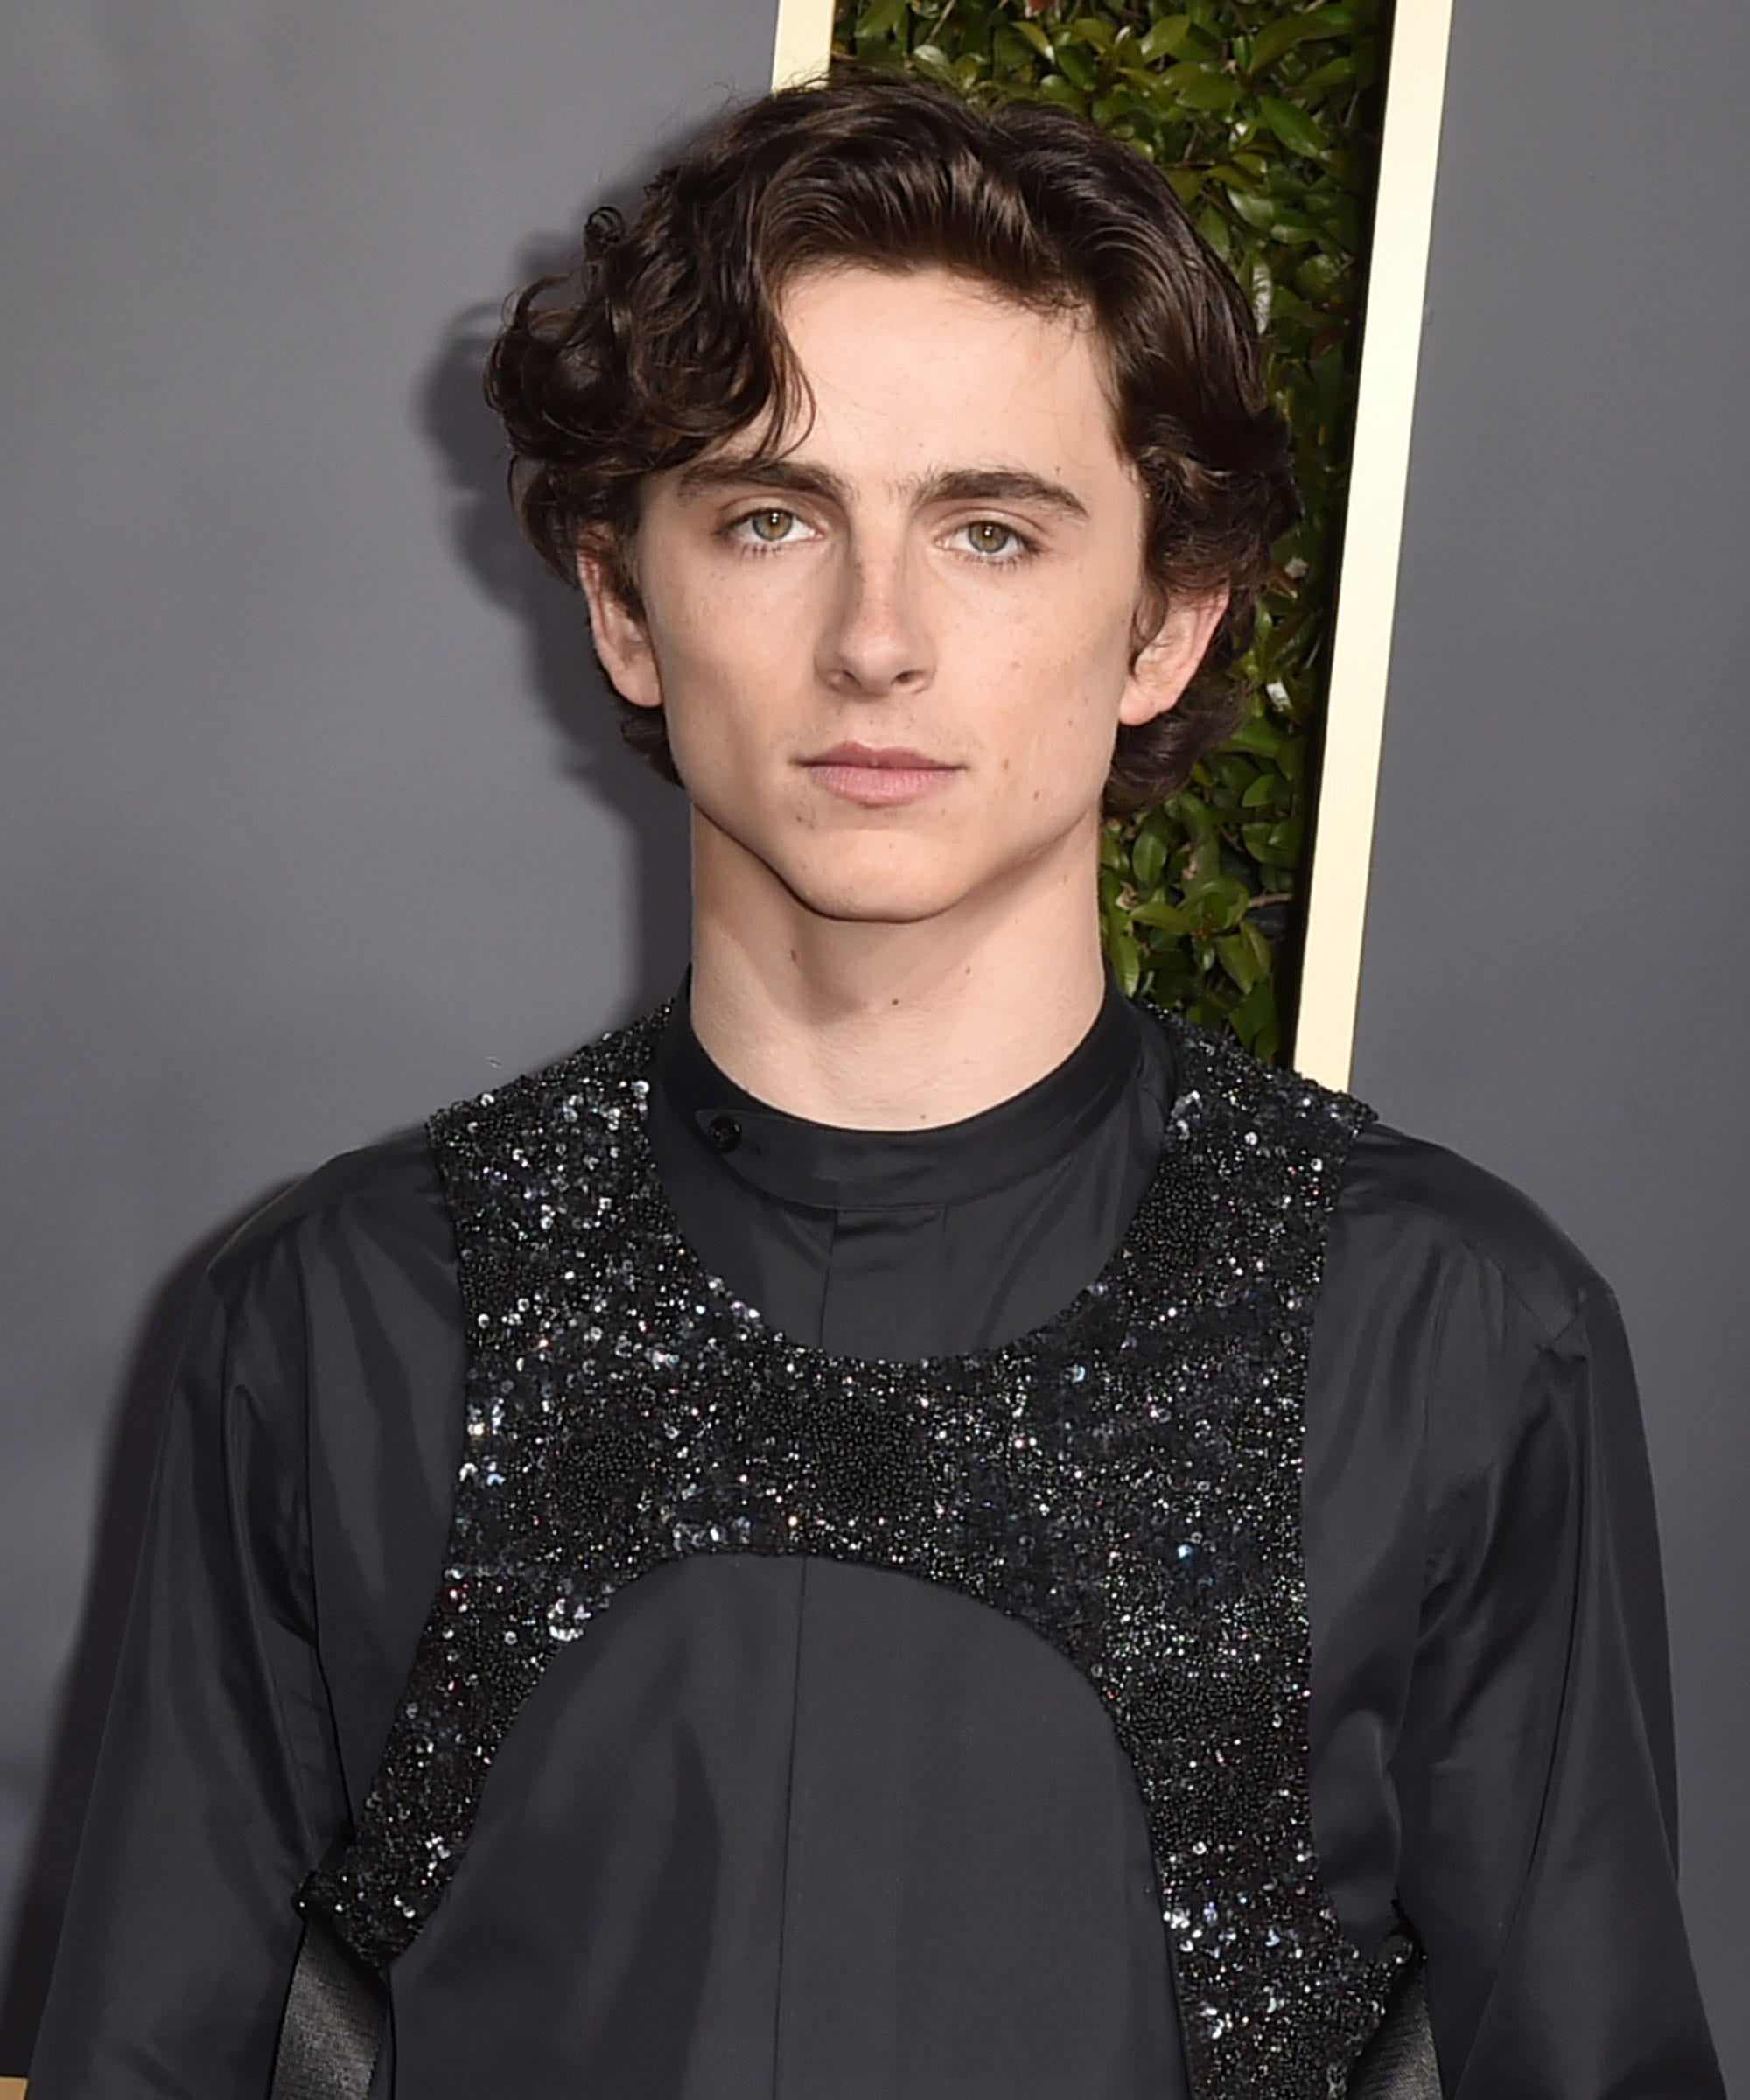 Timothee Chalamet Explains Sequined Harness Outfit